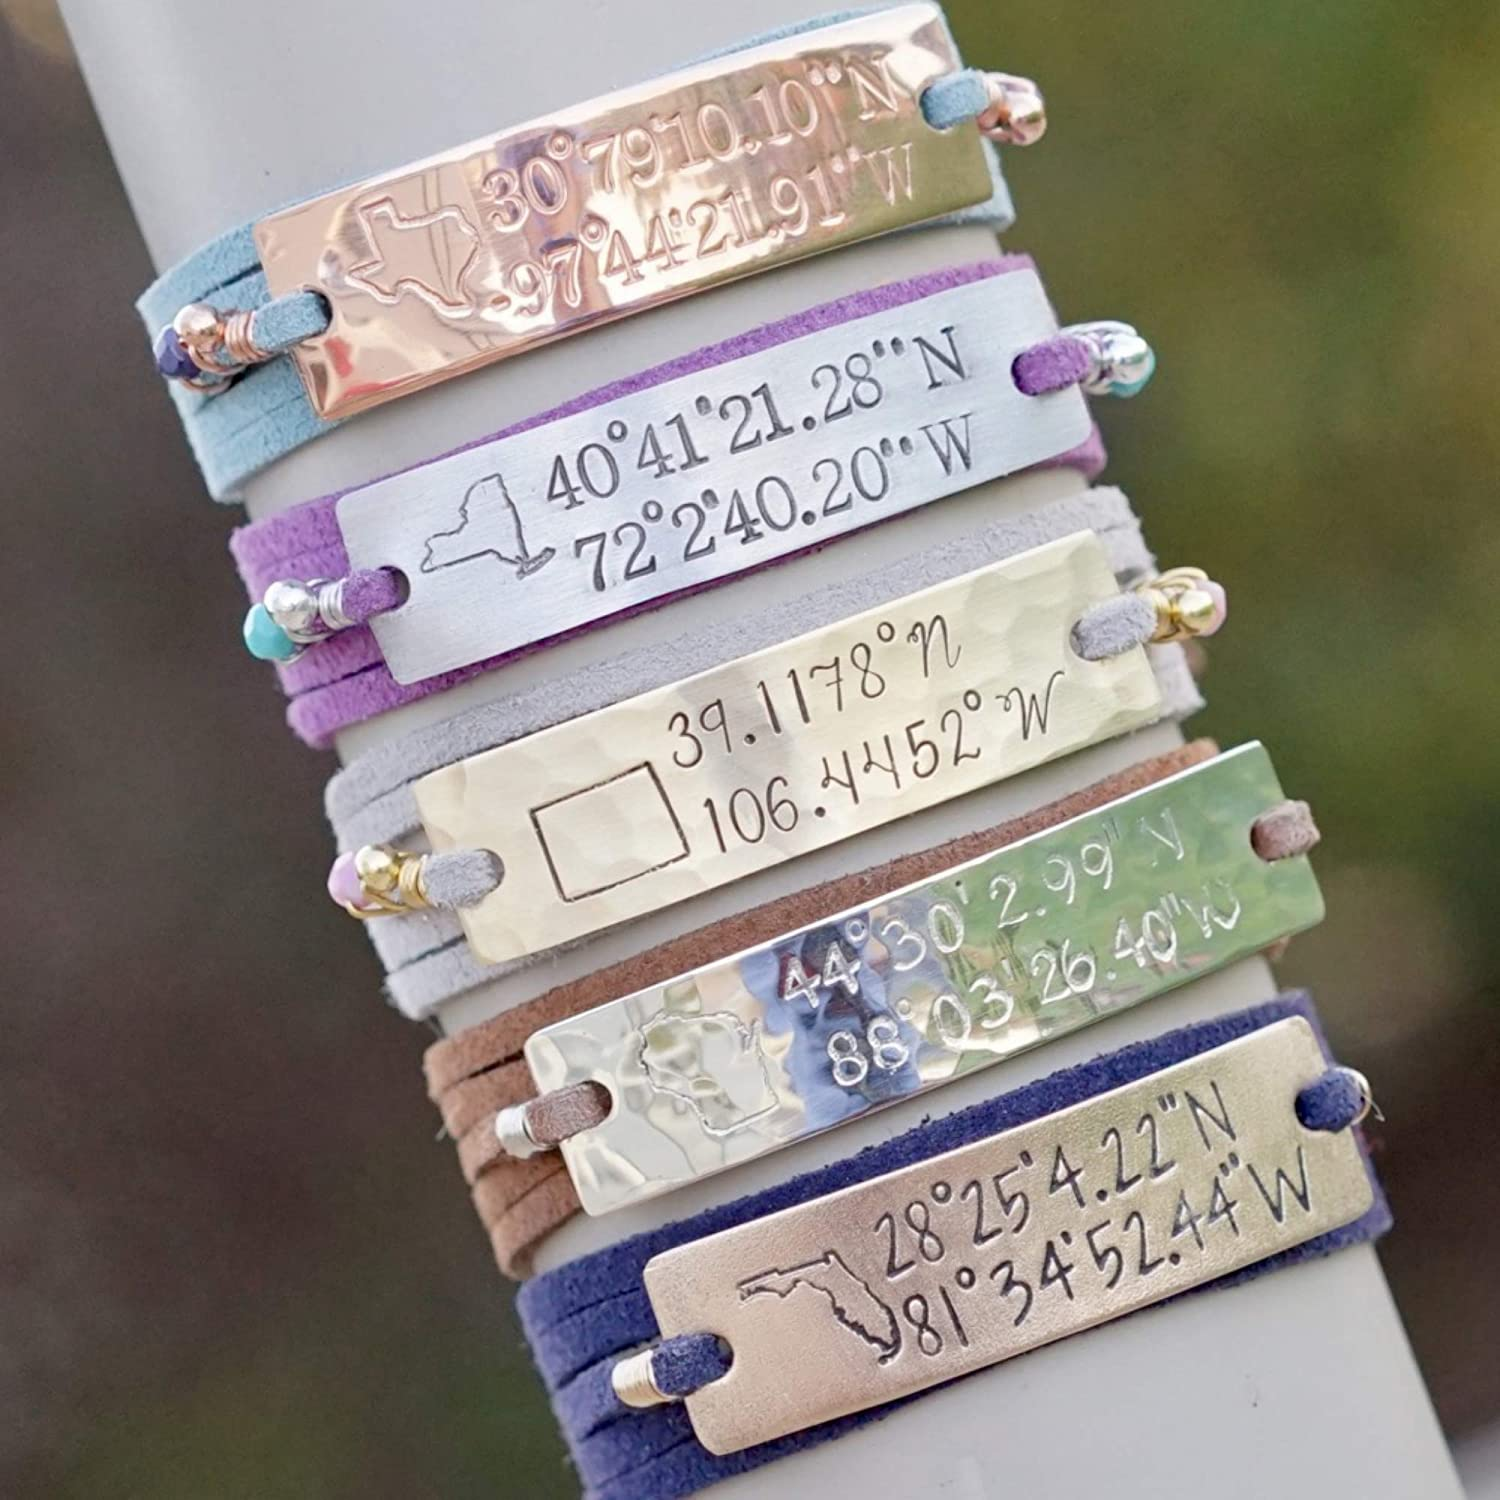 IF - Personalized Coordinate Bracelet Gift in Gold, Silver, or Copper, Location Bracelet, Coordinate Jewelry, Couples Bracelet, Couples Jewelry, Custom Bracelet, Custom Gift, Engraved Bracelet